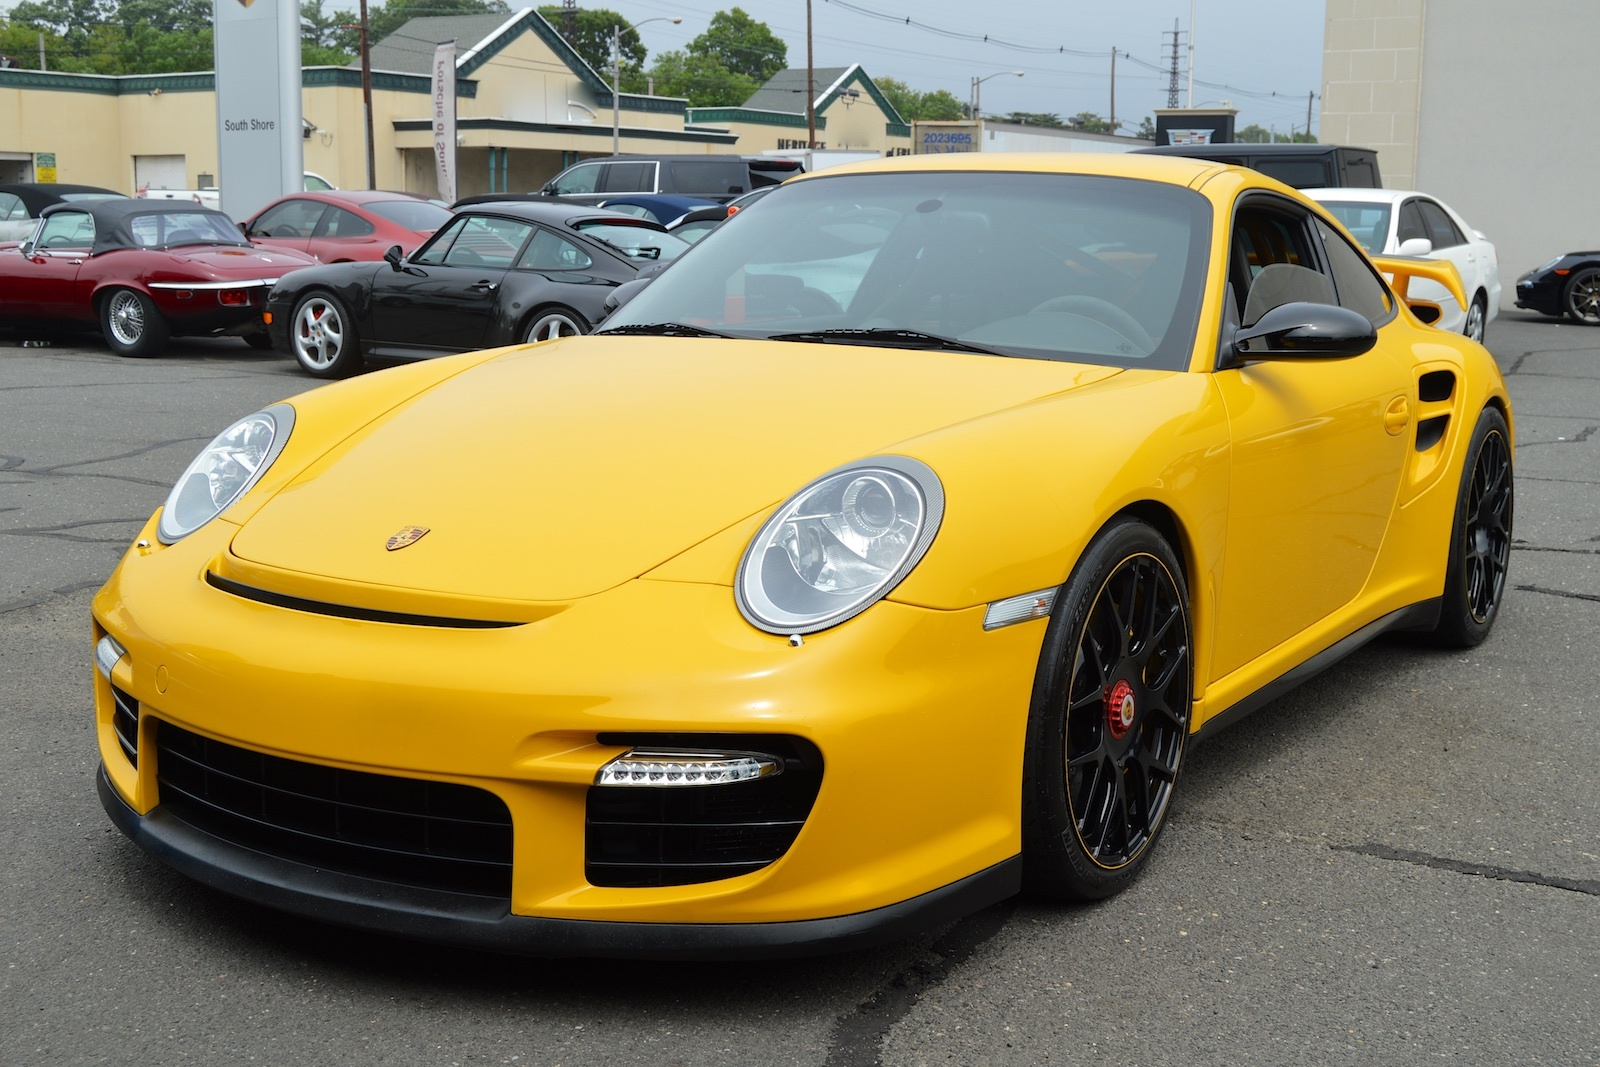 2008 porsche 911 gt2 sales price buy aircrafts. Black Bedroom Furniture Sets. Home Design Ideas